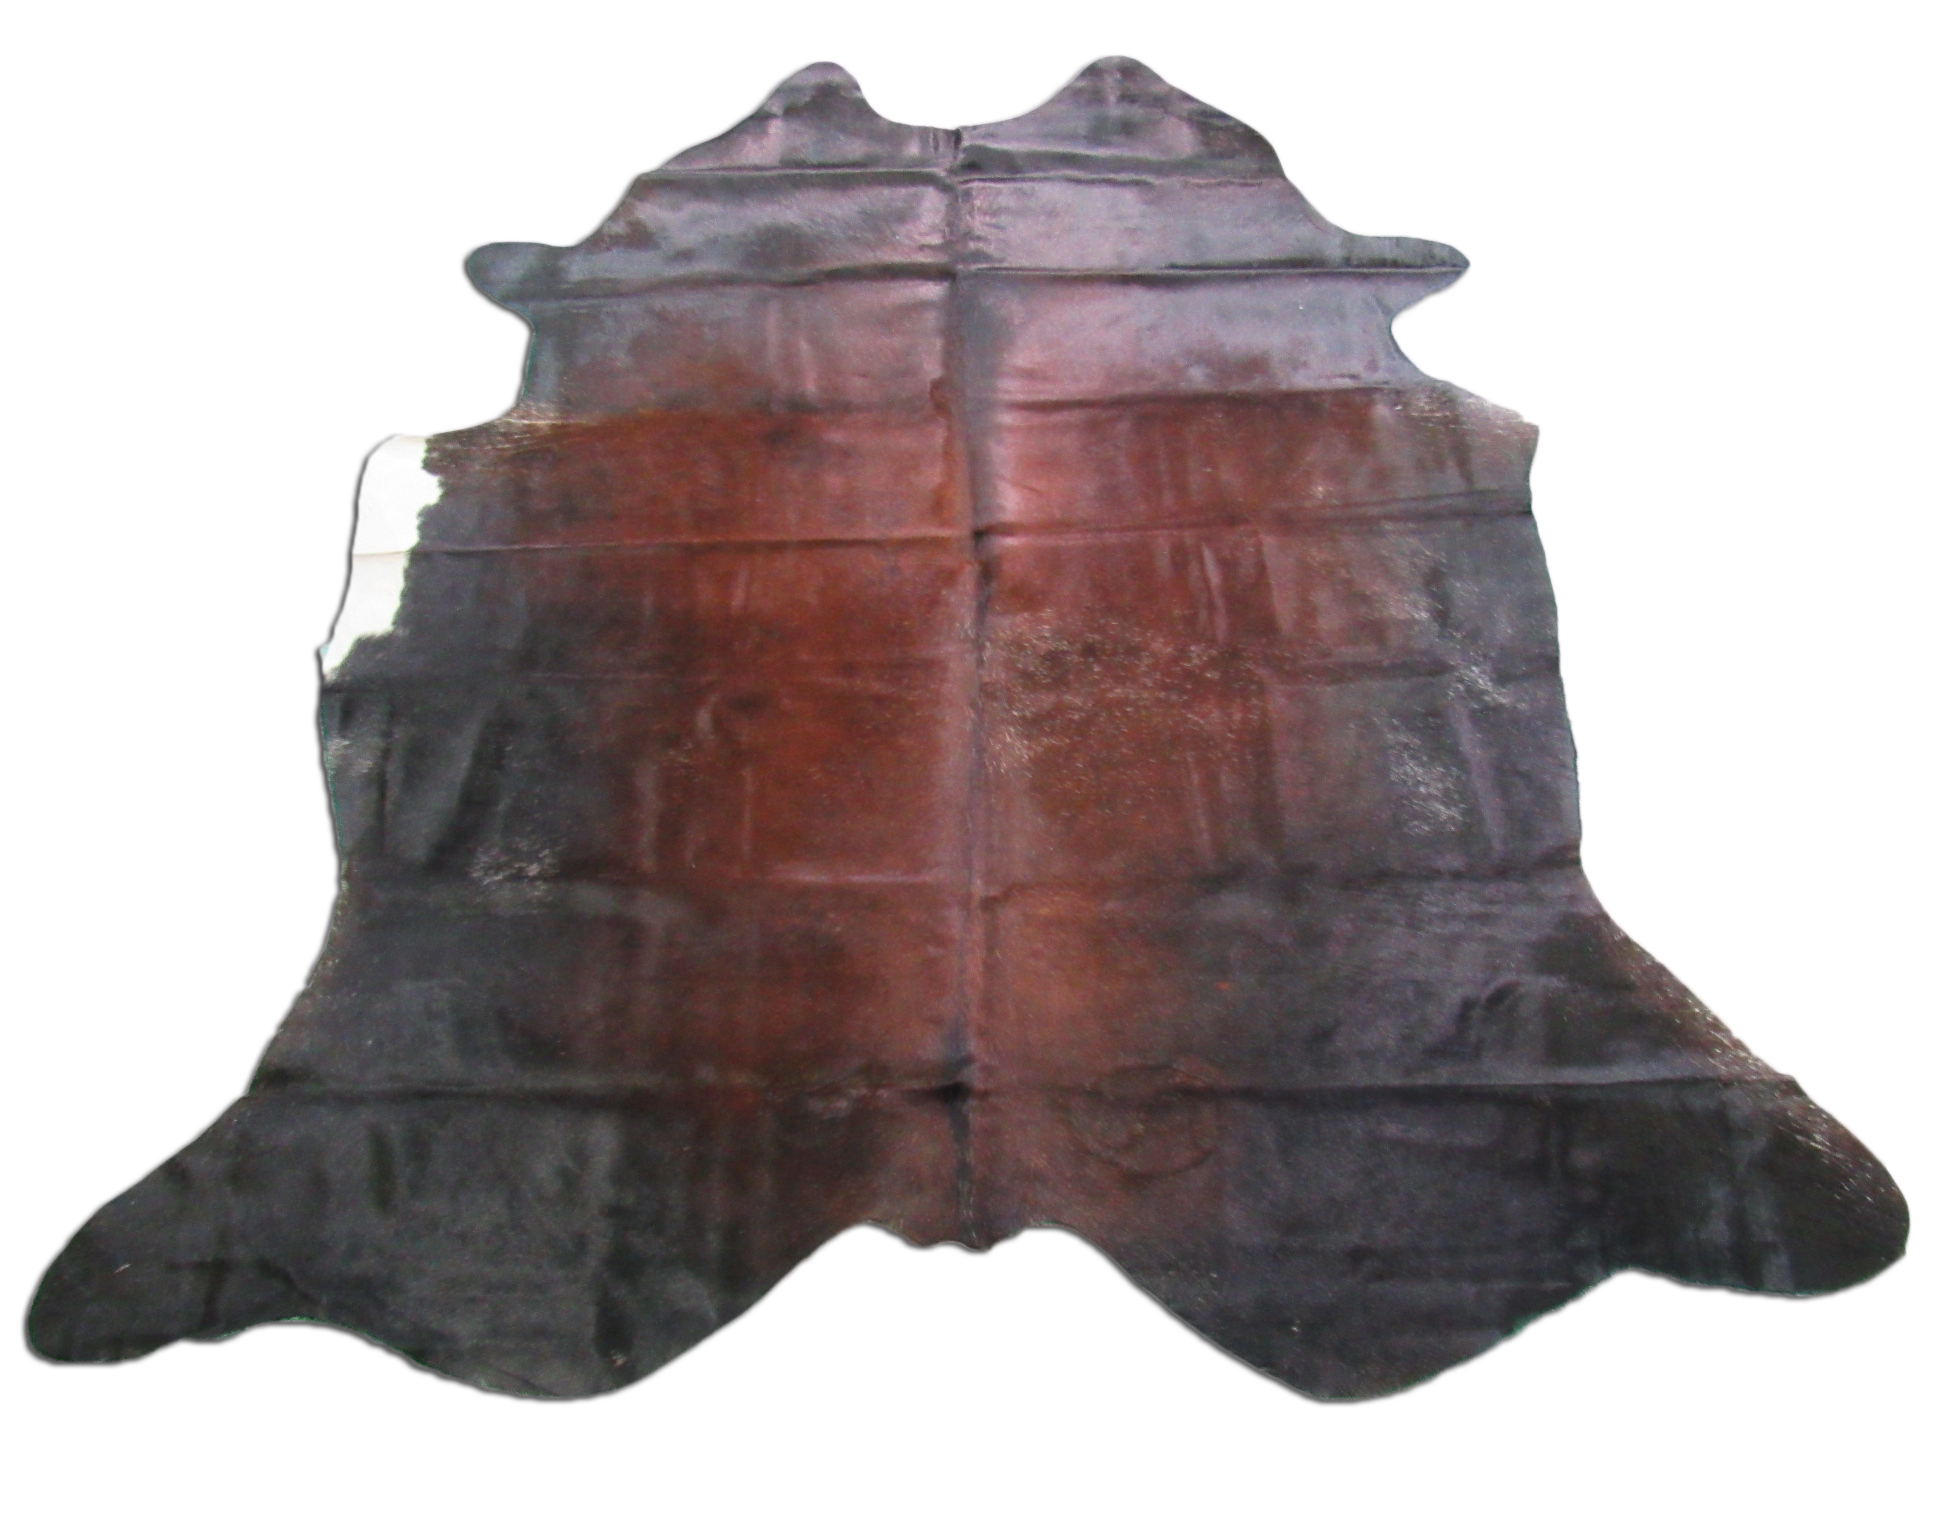 A-1240 Brown and White Cowhide Rug Size: 7 1/2' X 7'